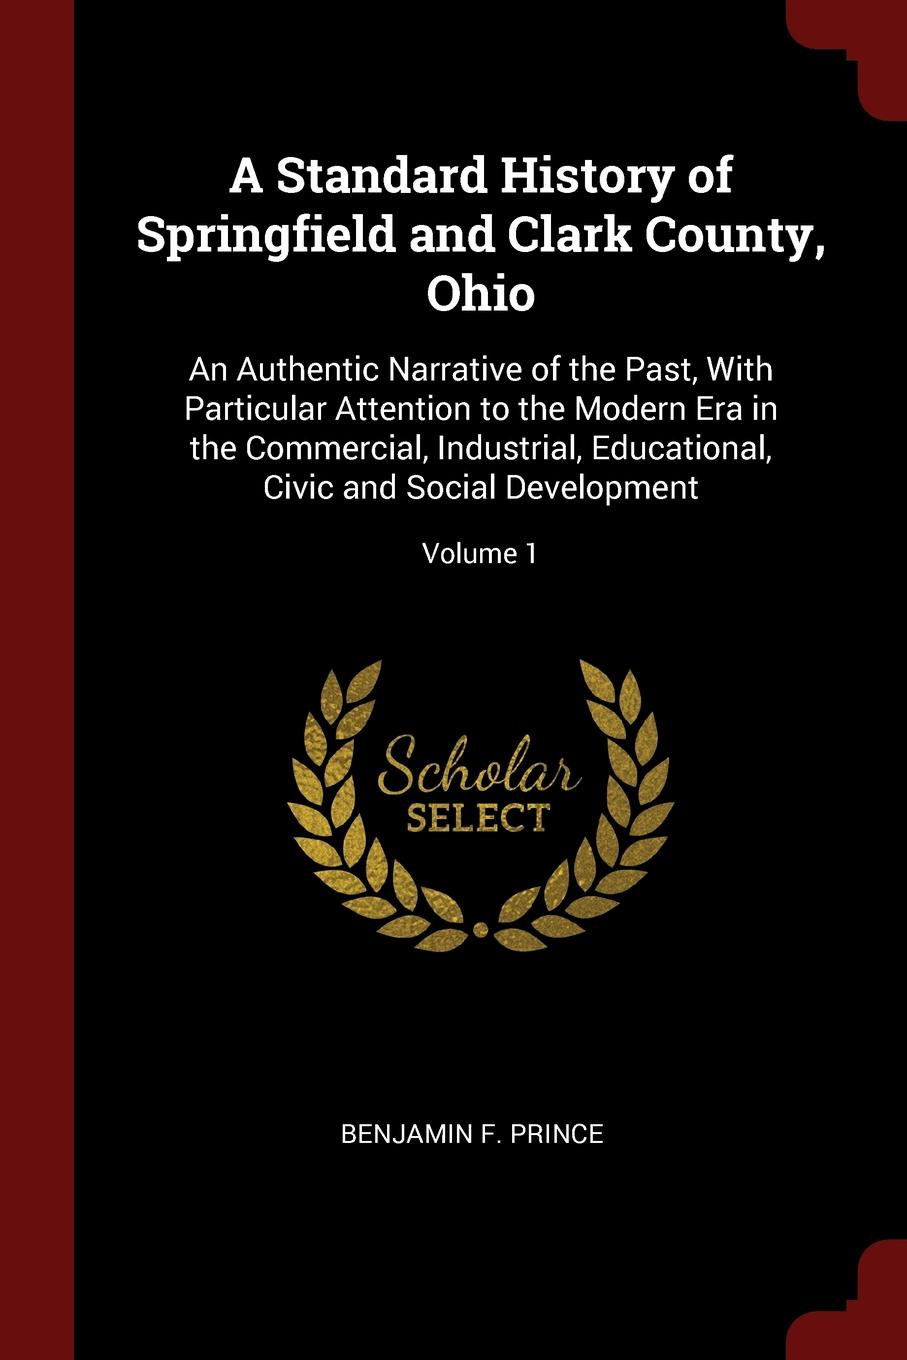 Benjamin F. Prince A Standard History of Springfield and Clark County, Ohio. An Authentic Narrative of the Past, With Particular Attention to the Modern Era in the Commercial, Industrial, Educational, Civic and Social Development; Volume 1